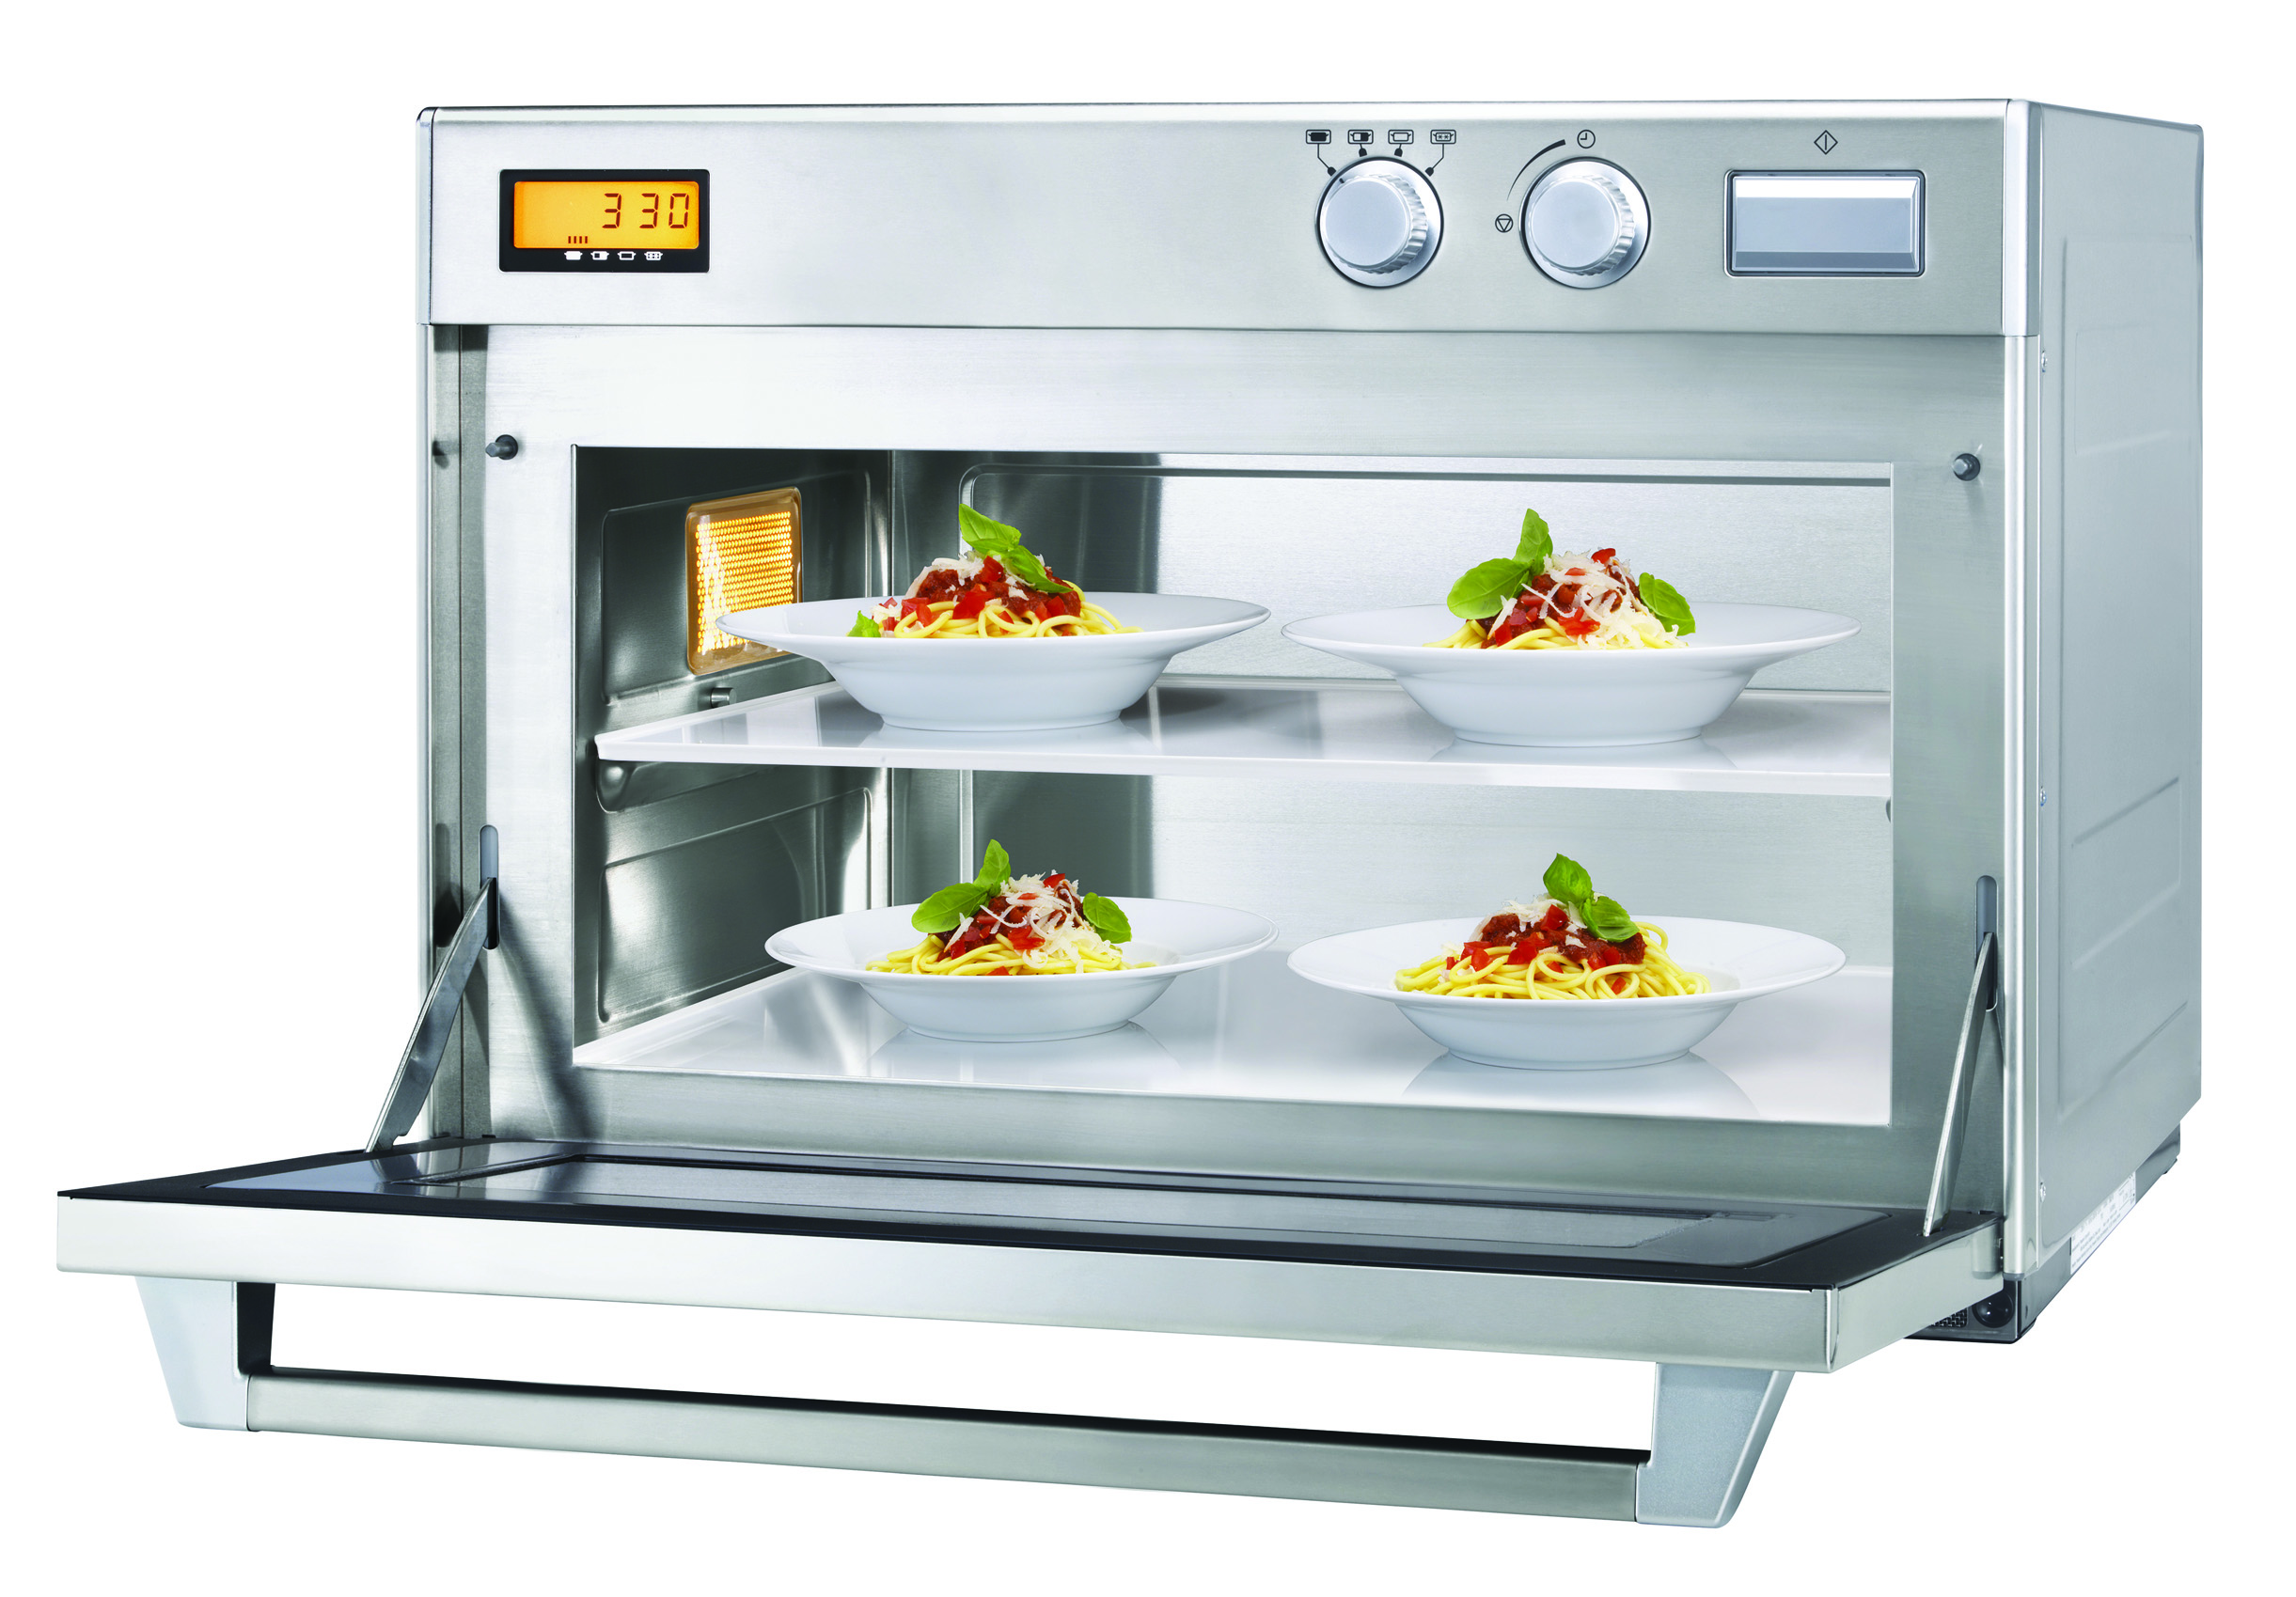 MICRO-ONDES PRO GOURMET 44L, 4 MAGNÉTRONS, 3200W